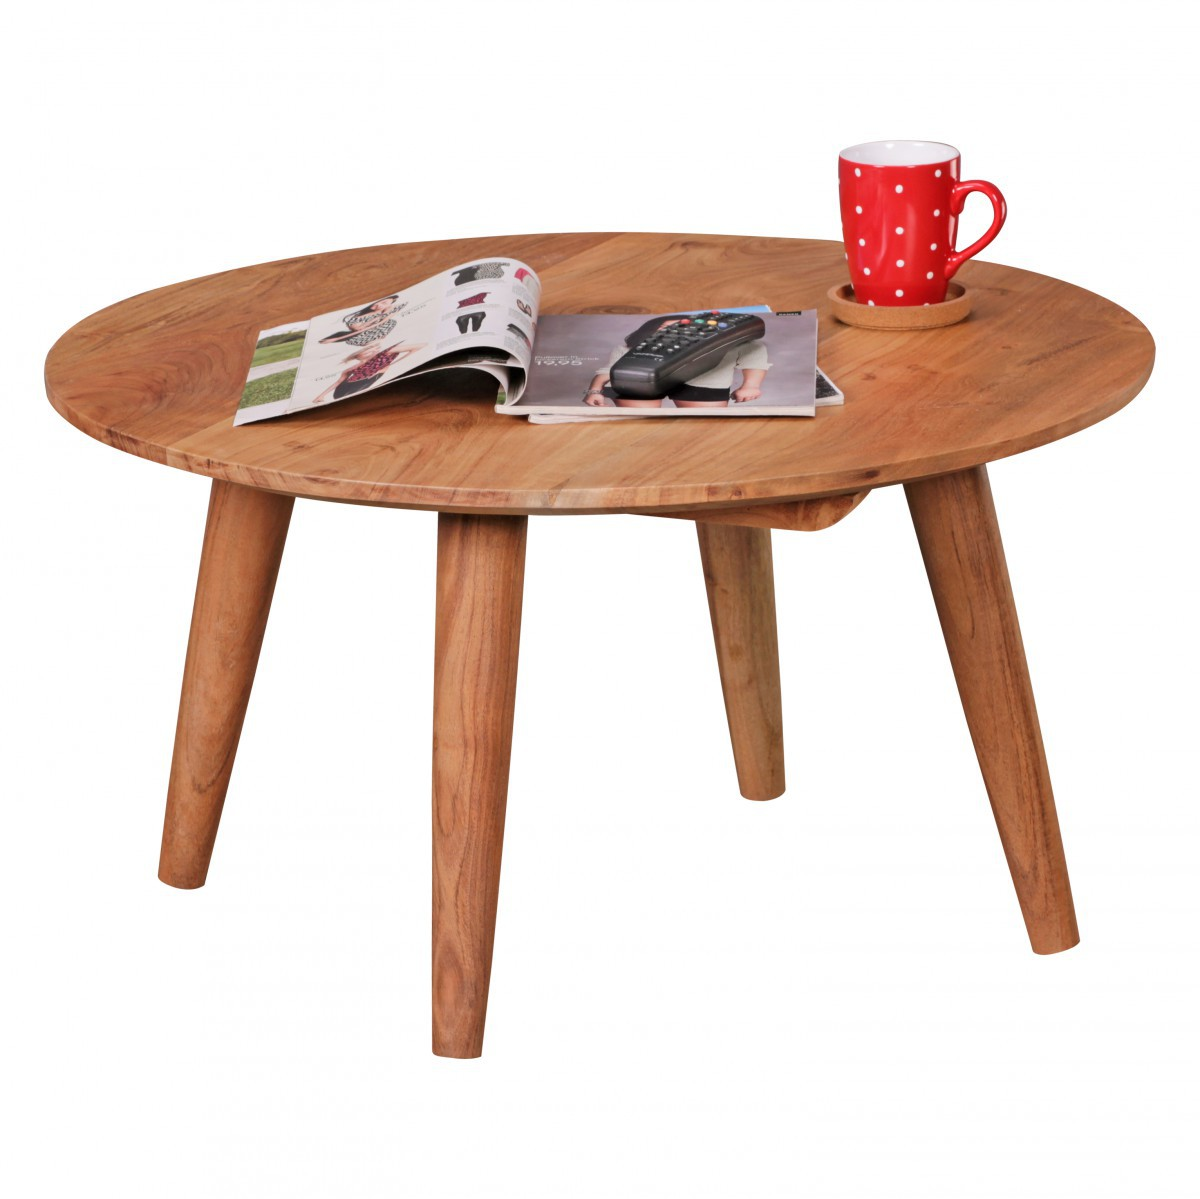 Finebuy table basse en bois massif acacia table basse for Table basse ronde laquee